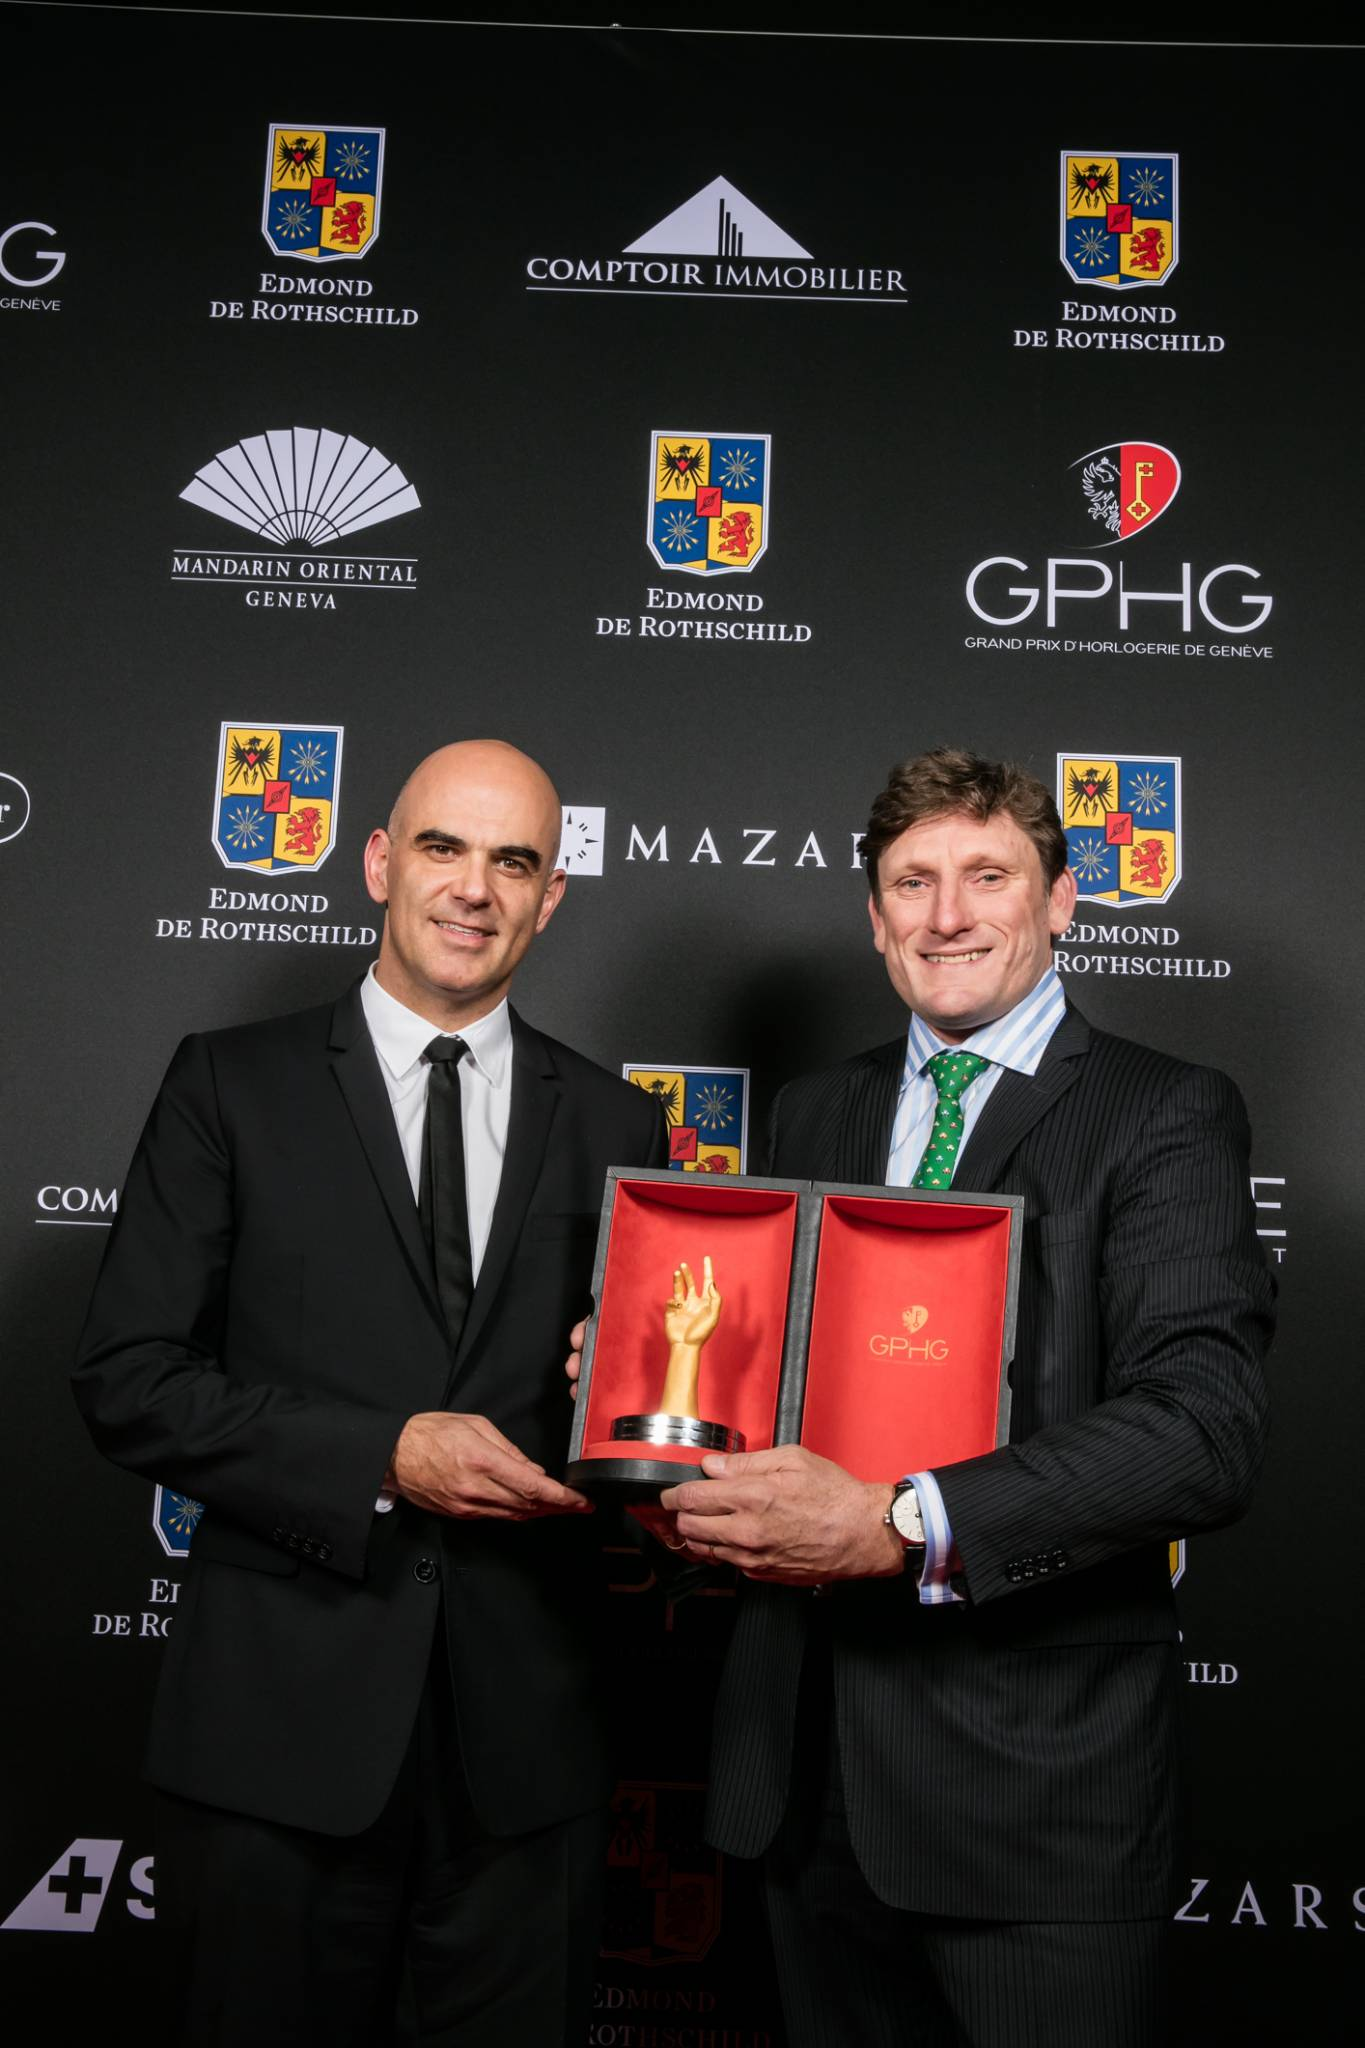 Alain Berset (Federal Councillor) and Stephen Forsey (Co-founder of Greubel Forsey, winner of the « Aiguille d'Or » Grand Prix 2015)